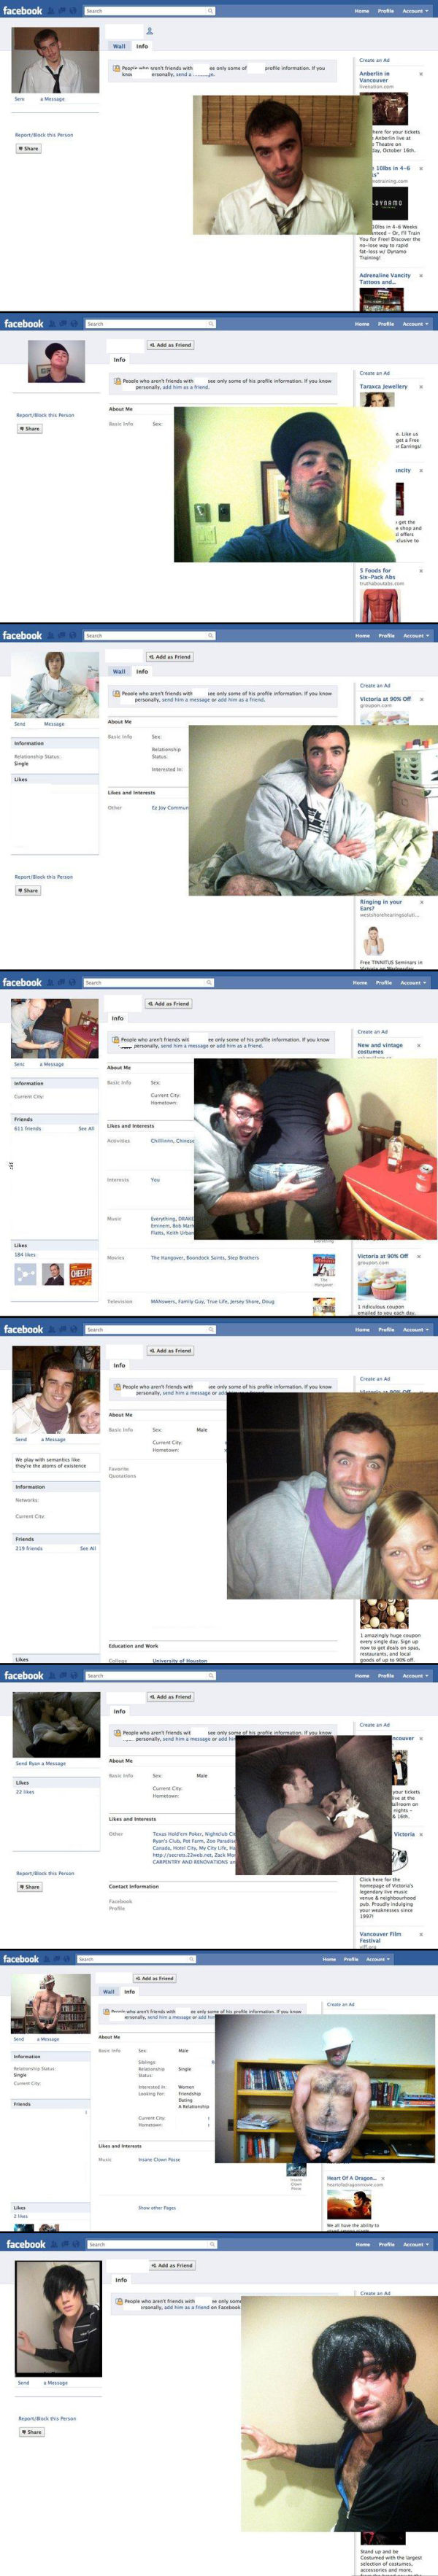 Guy dresses up as Facebook users and sends them friend requests